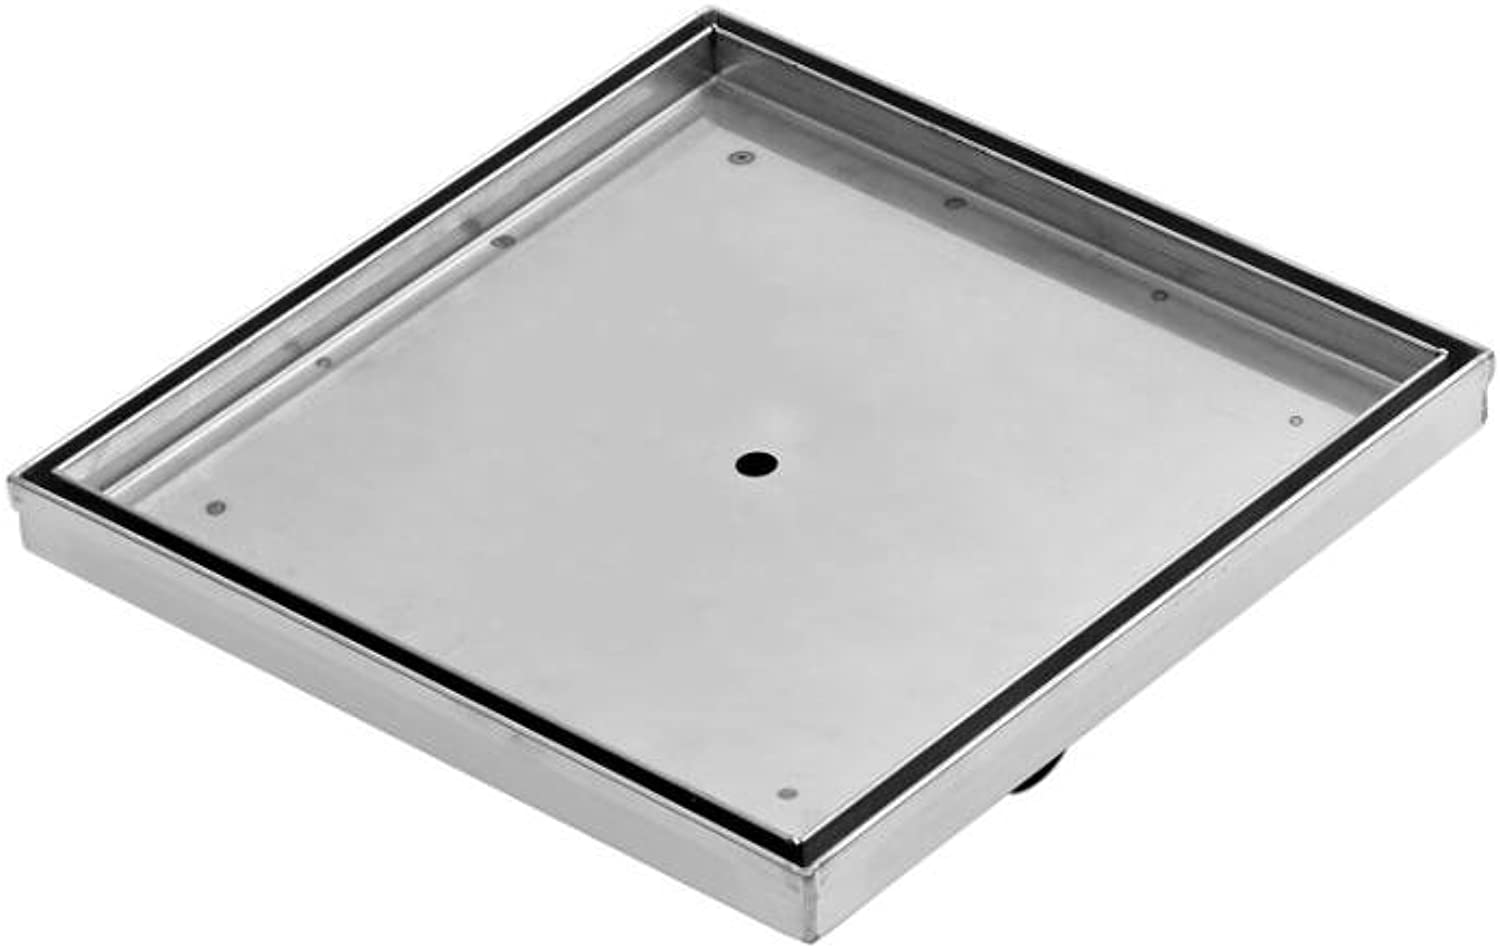 Milano 200mm Recessed Square Tile Insert Stainless Steel Hidden Shower Drain Channel Waste for Wet Rooms - Brushed Steel Finish